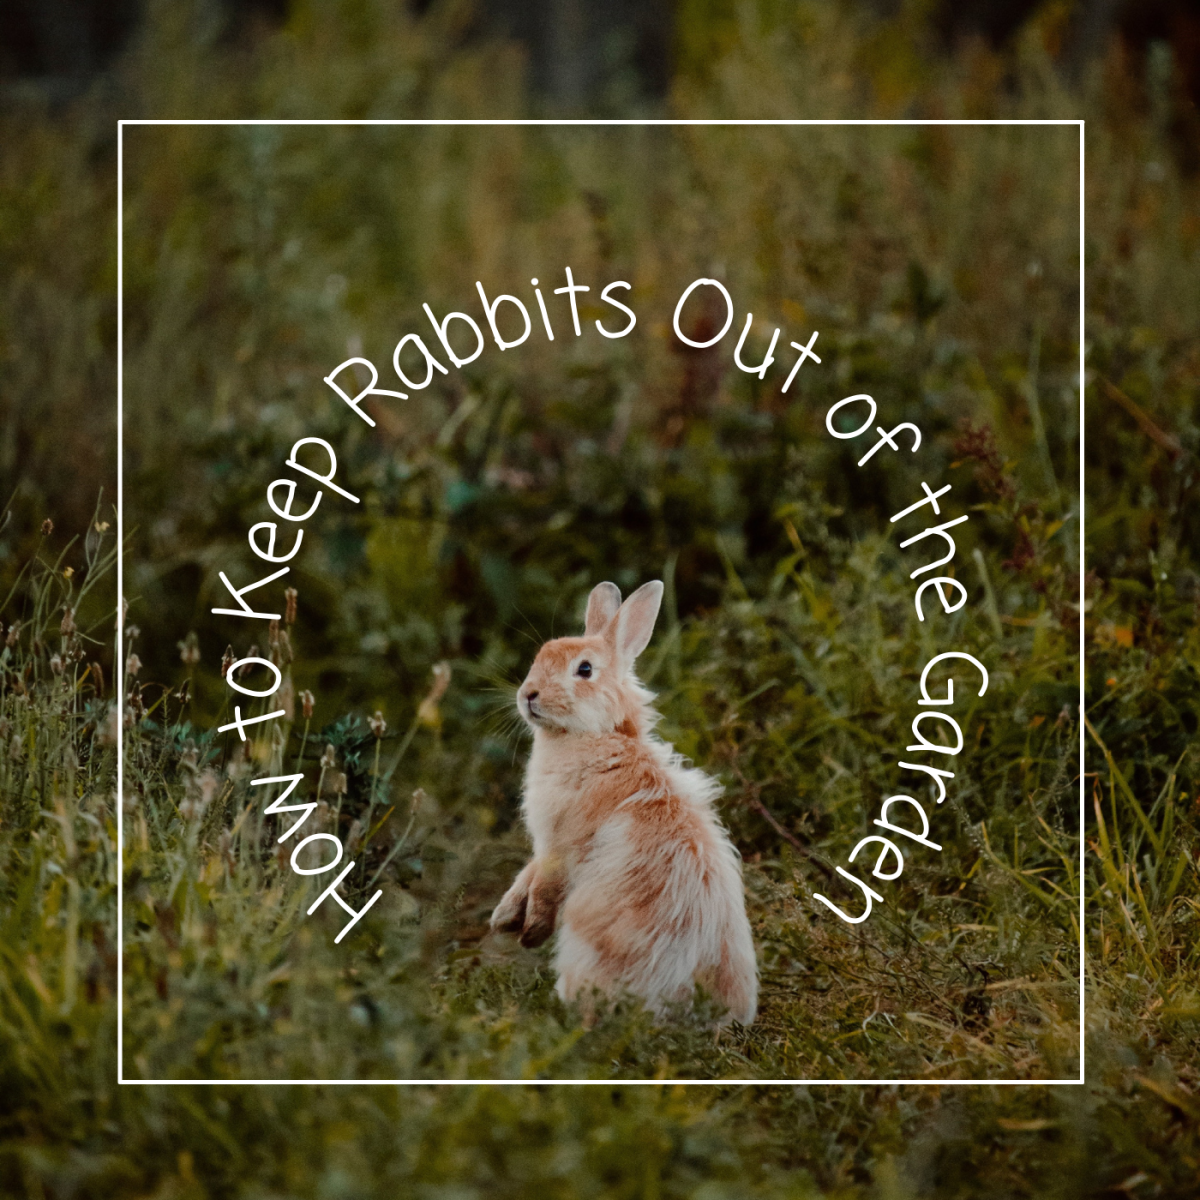 Learn how to keep rabbits out of your garden to preserve your vegetables.